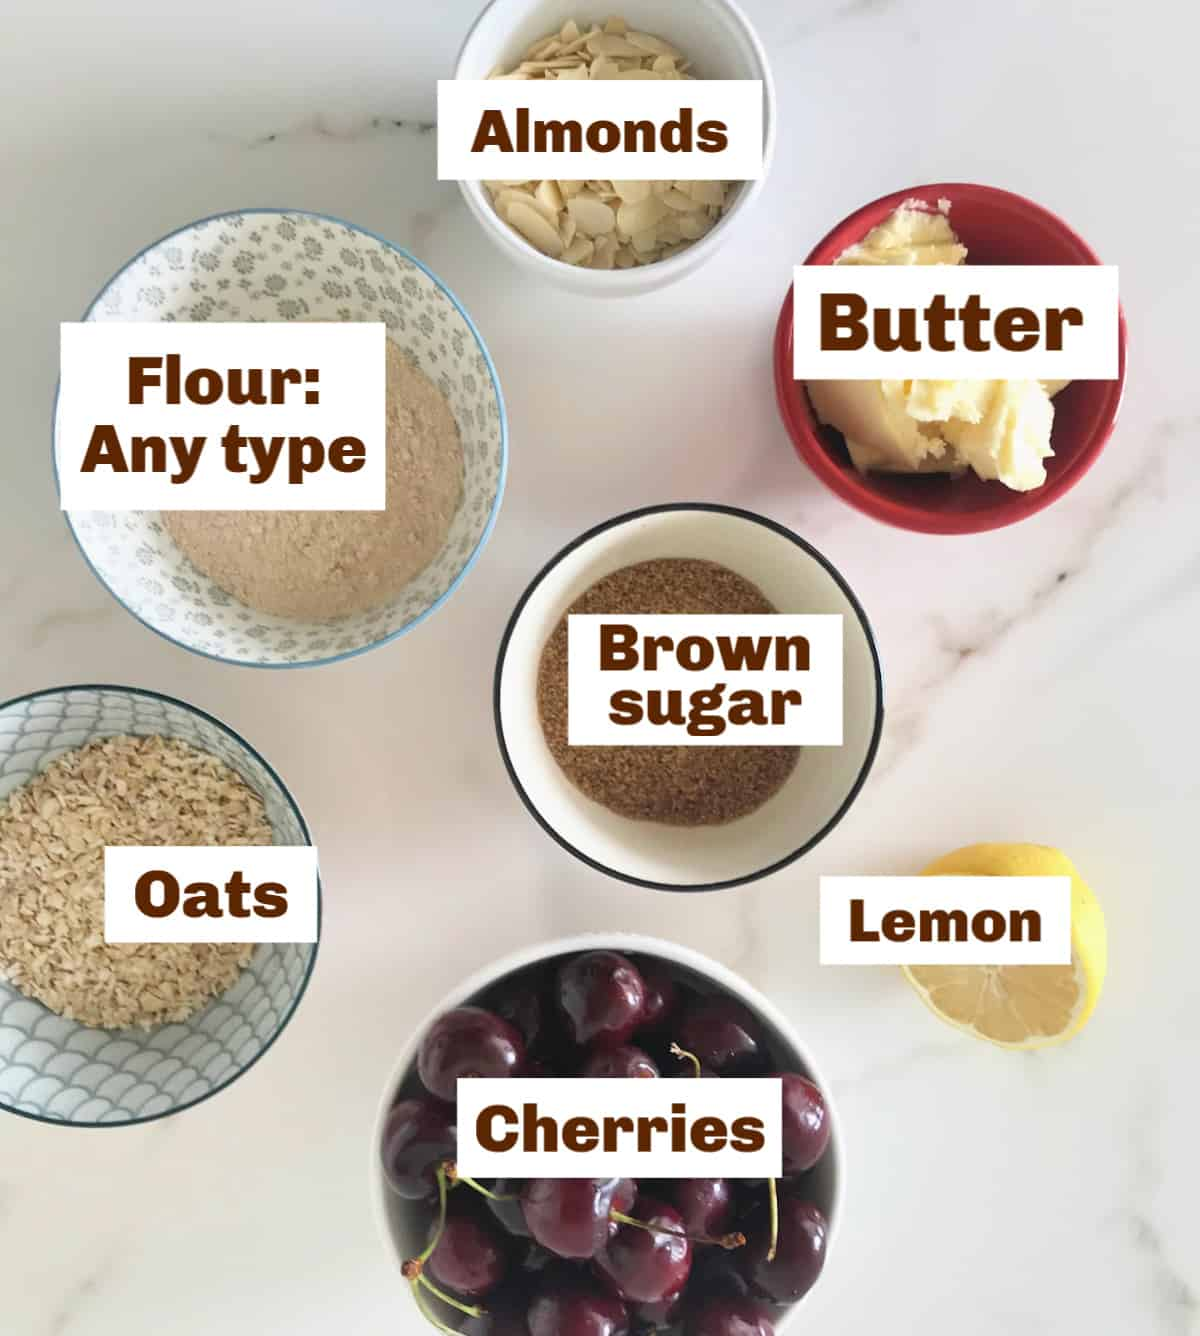 Bowls with ingredients, cherries, a half lemon, white surface